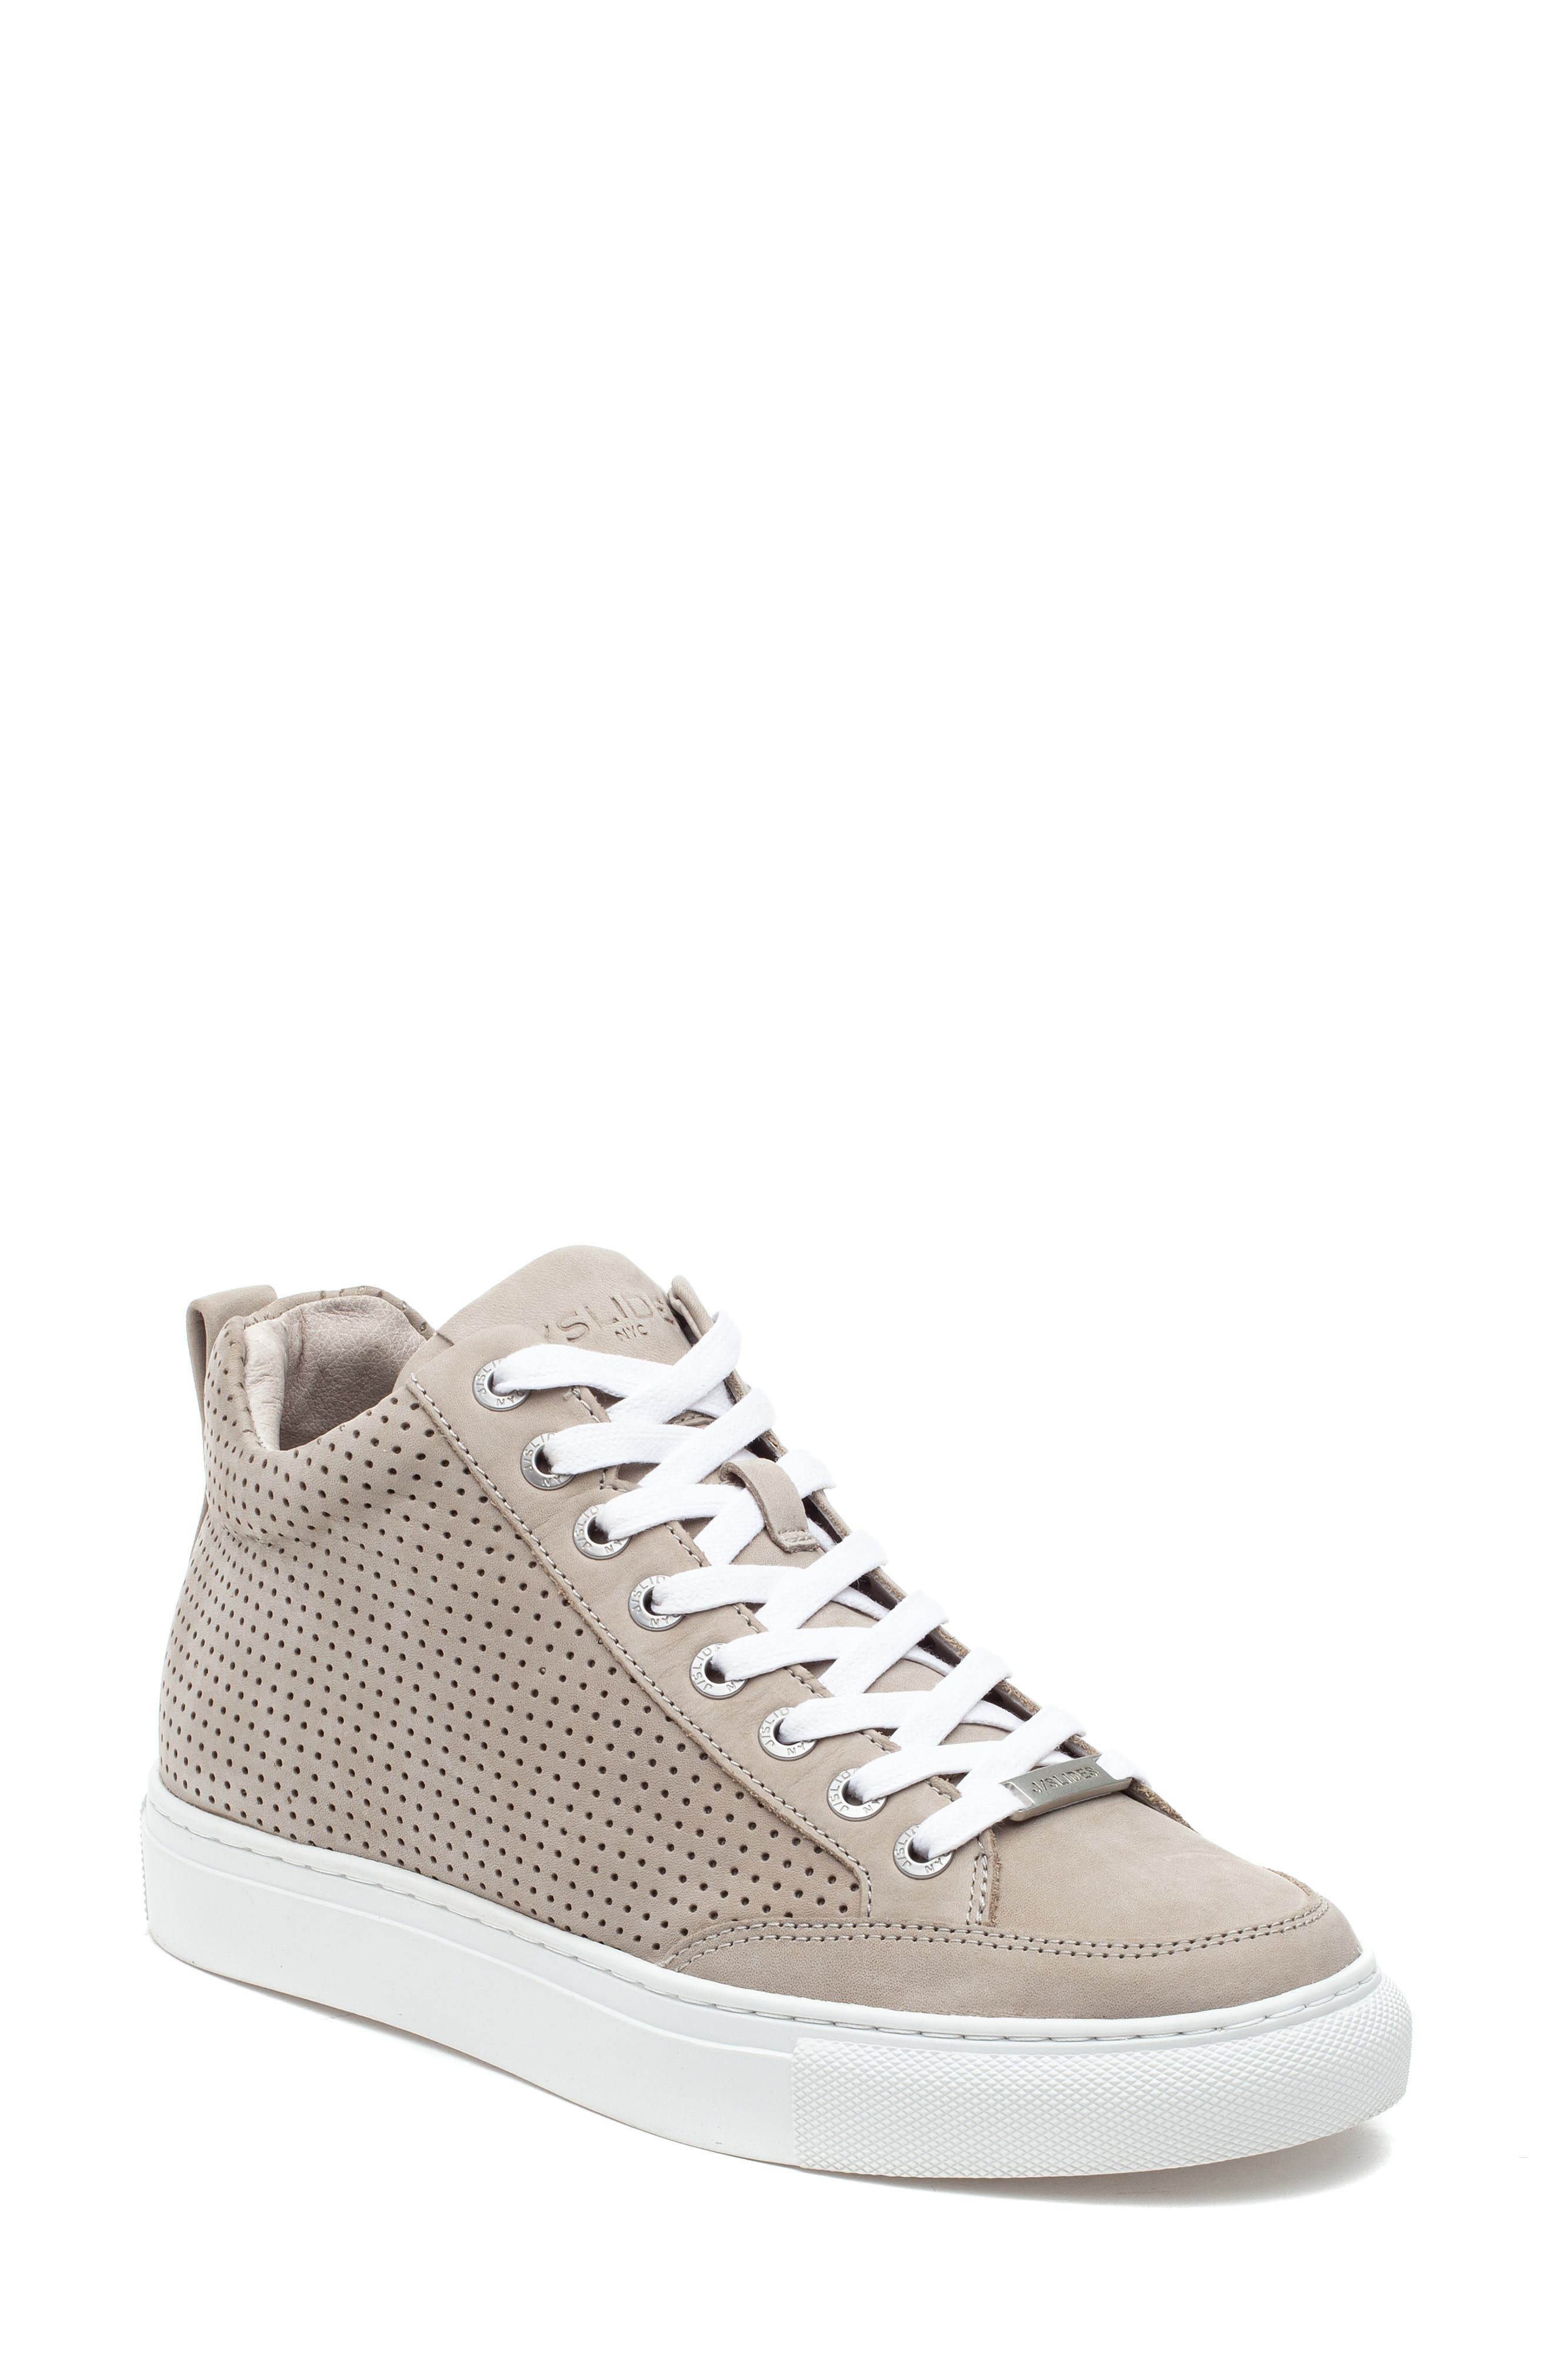 Ludlow Perforated High Top Sneaker